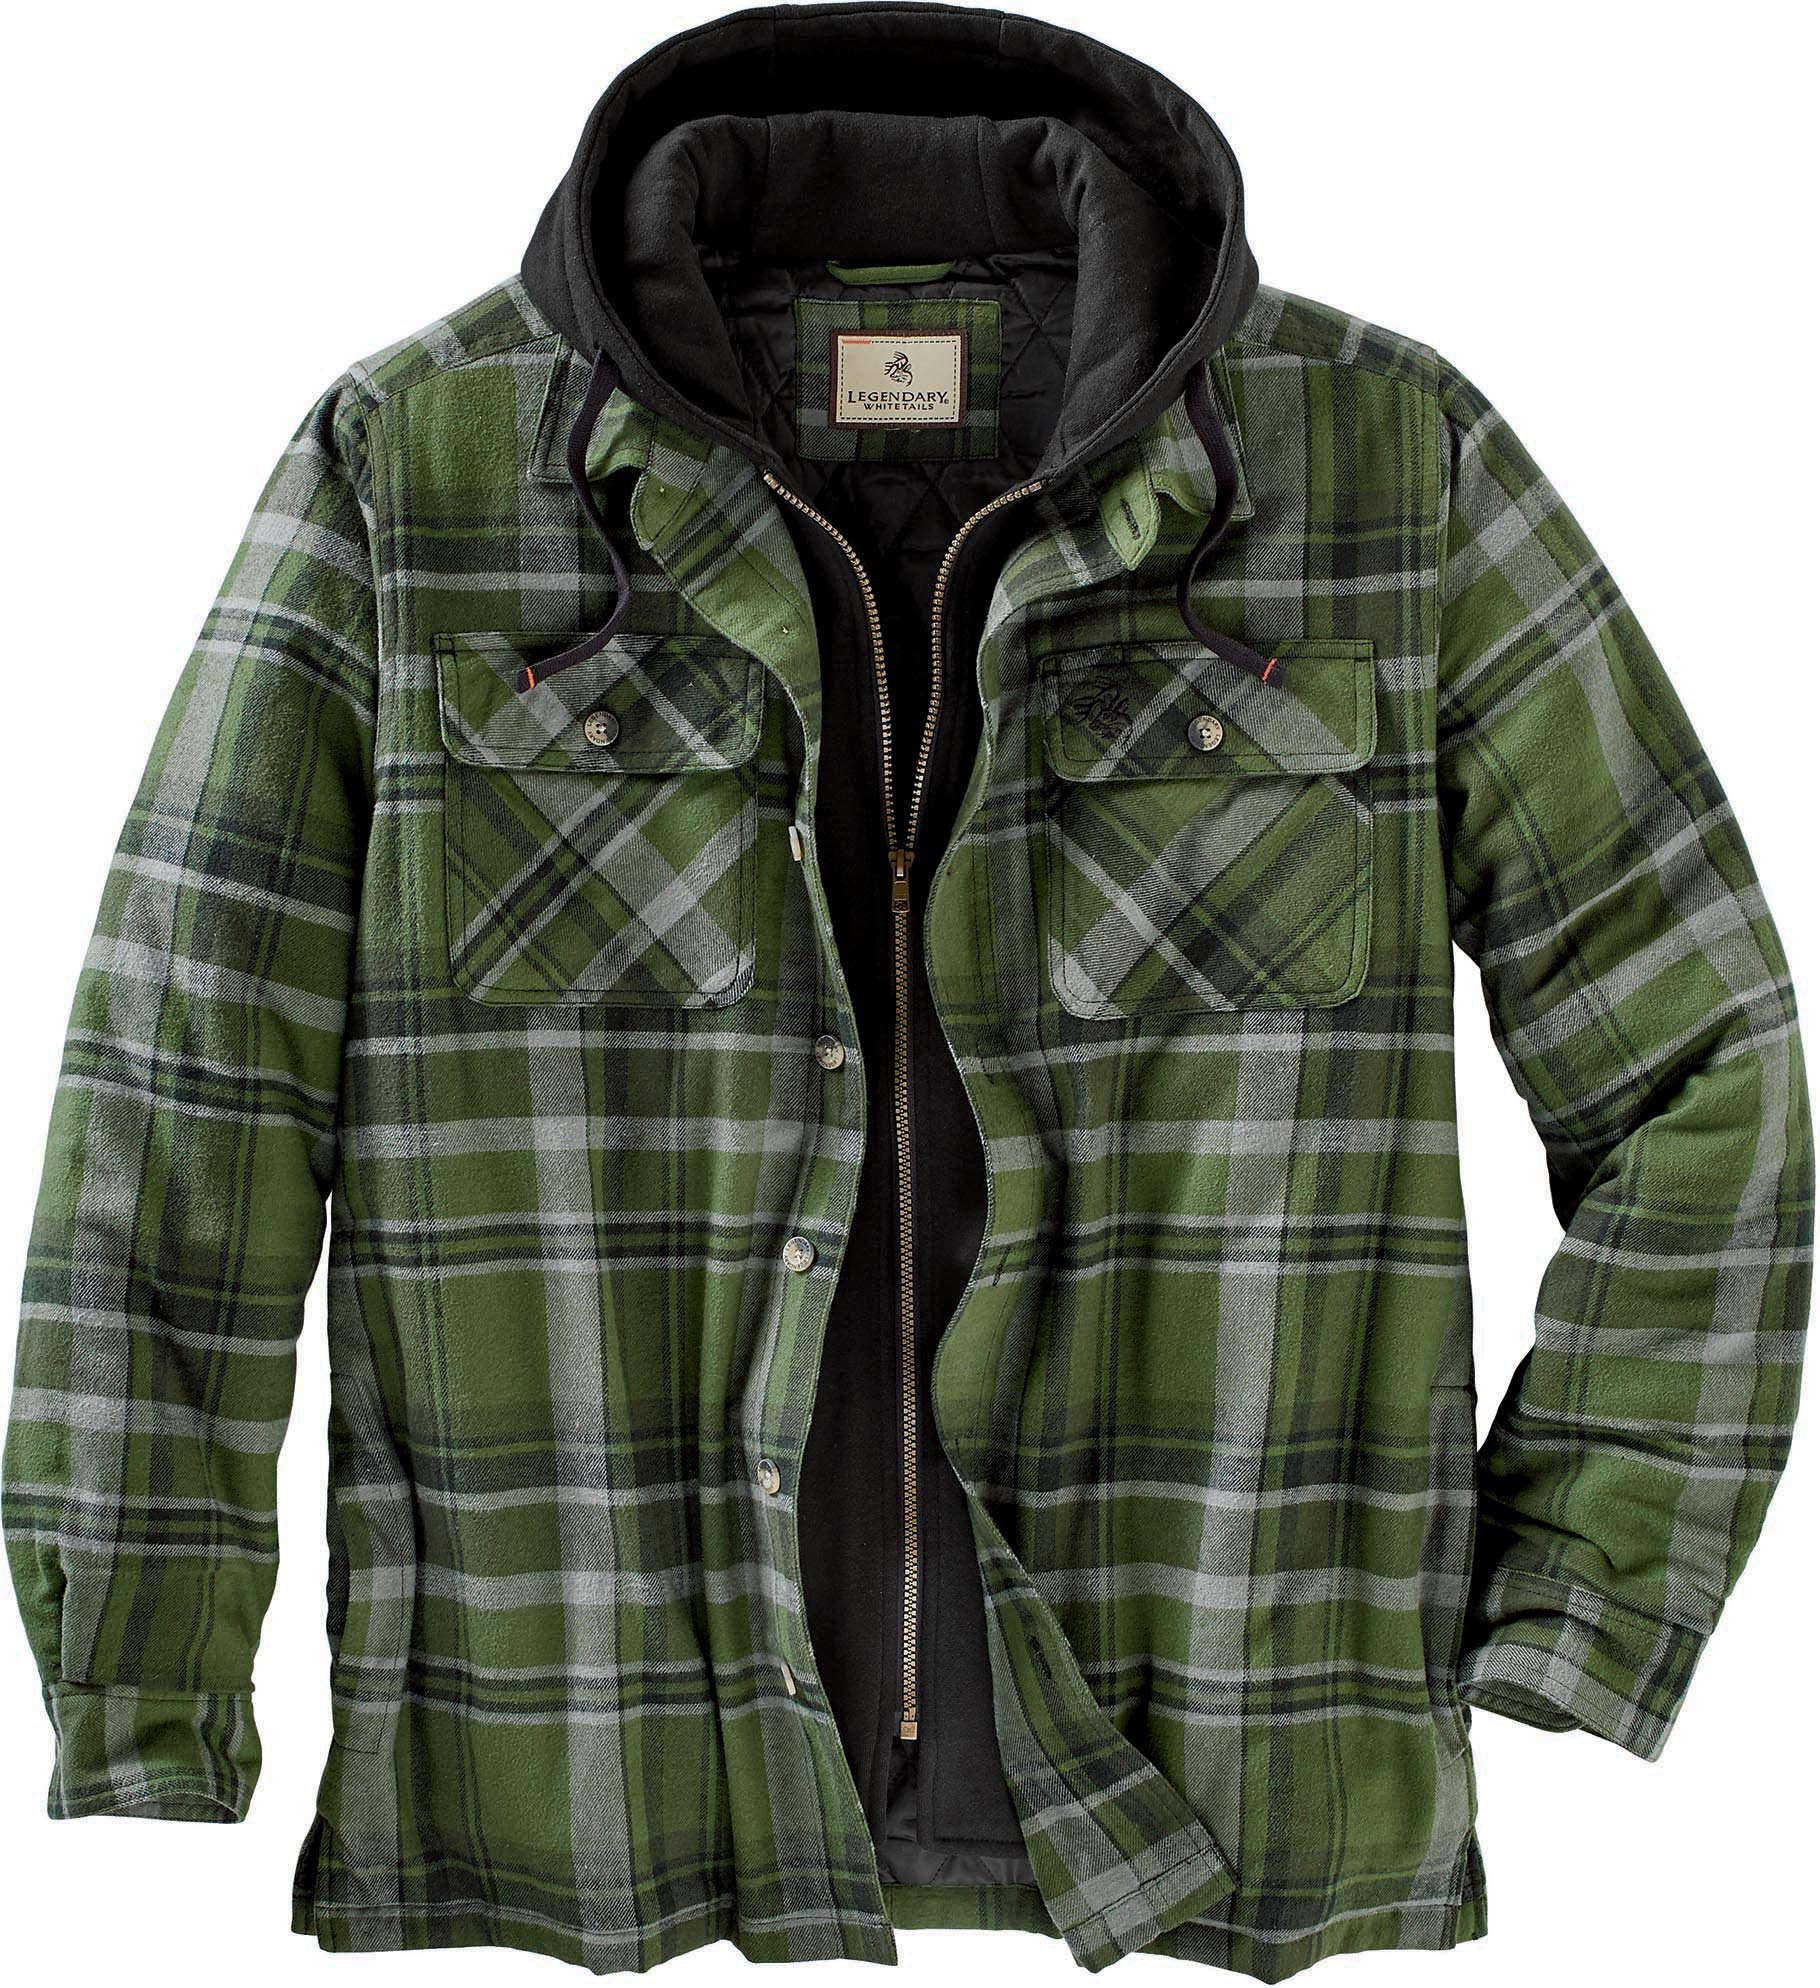 Legendary Whitetails Maplewood Hooded Shirt Jacket, Army Green Plaid, X-Large Tall by Legendary Whitetails